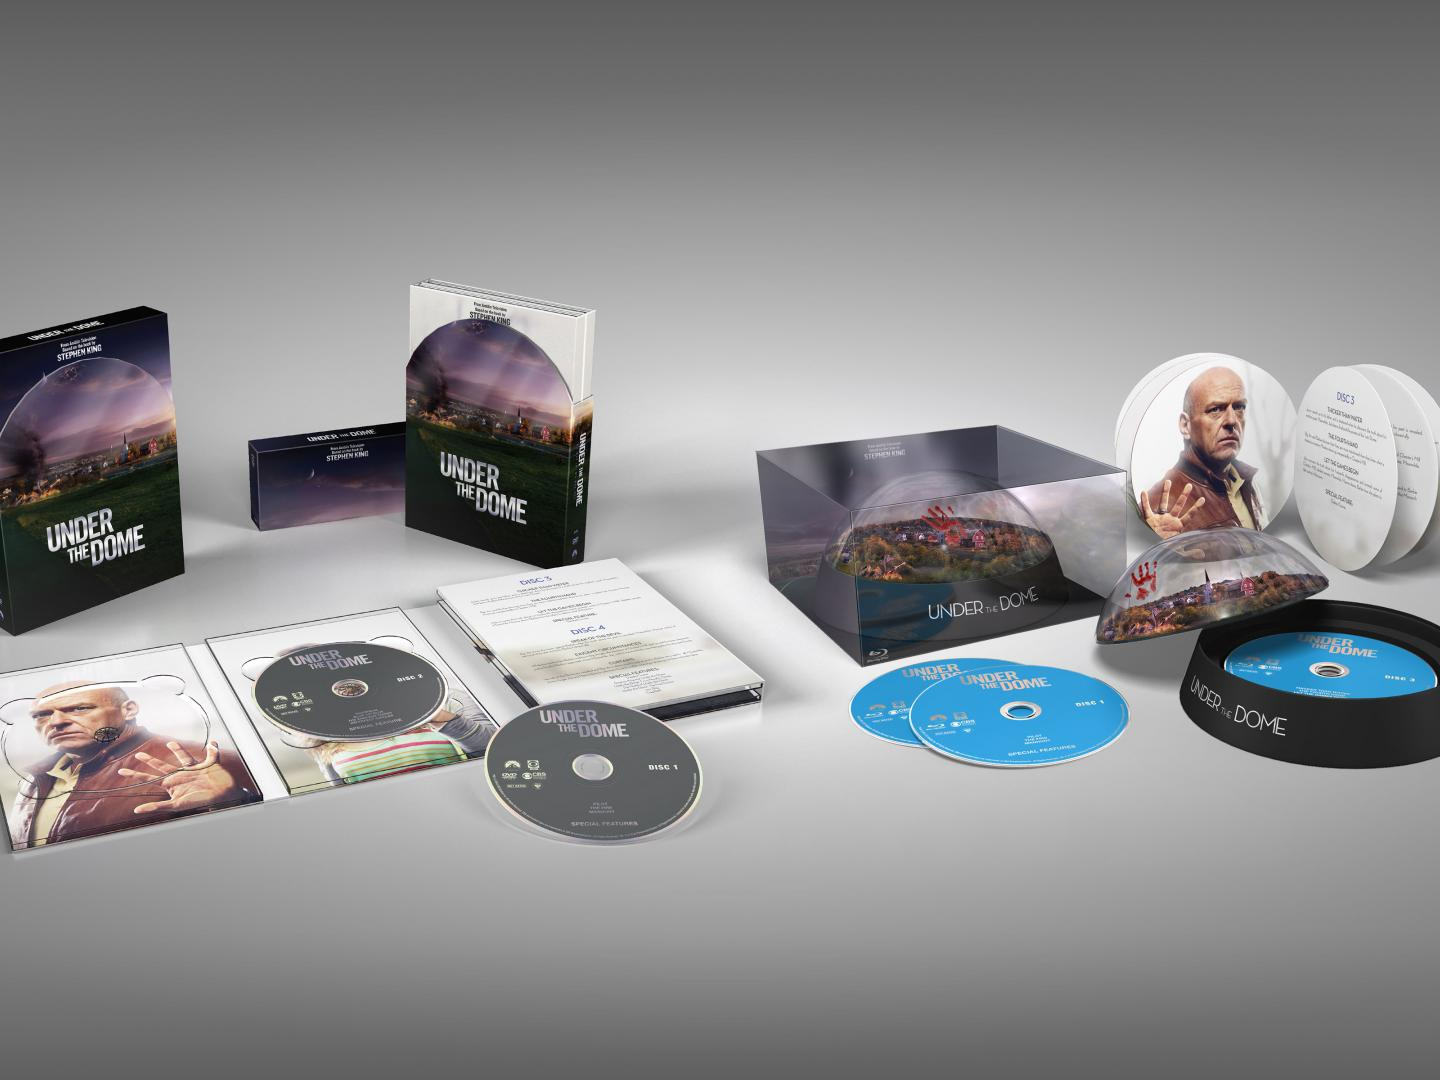 Collector's Edition Box and Amazon Exclusive Blu-ray Dome Edition Thumbnail